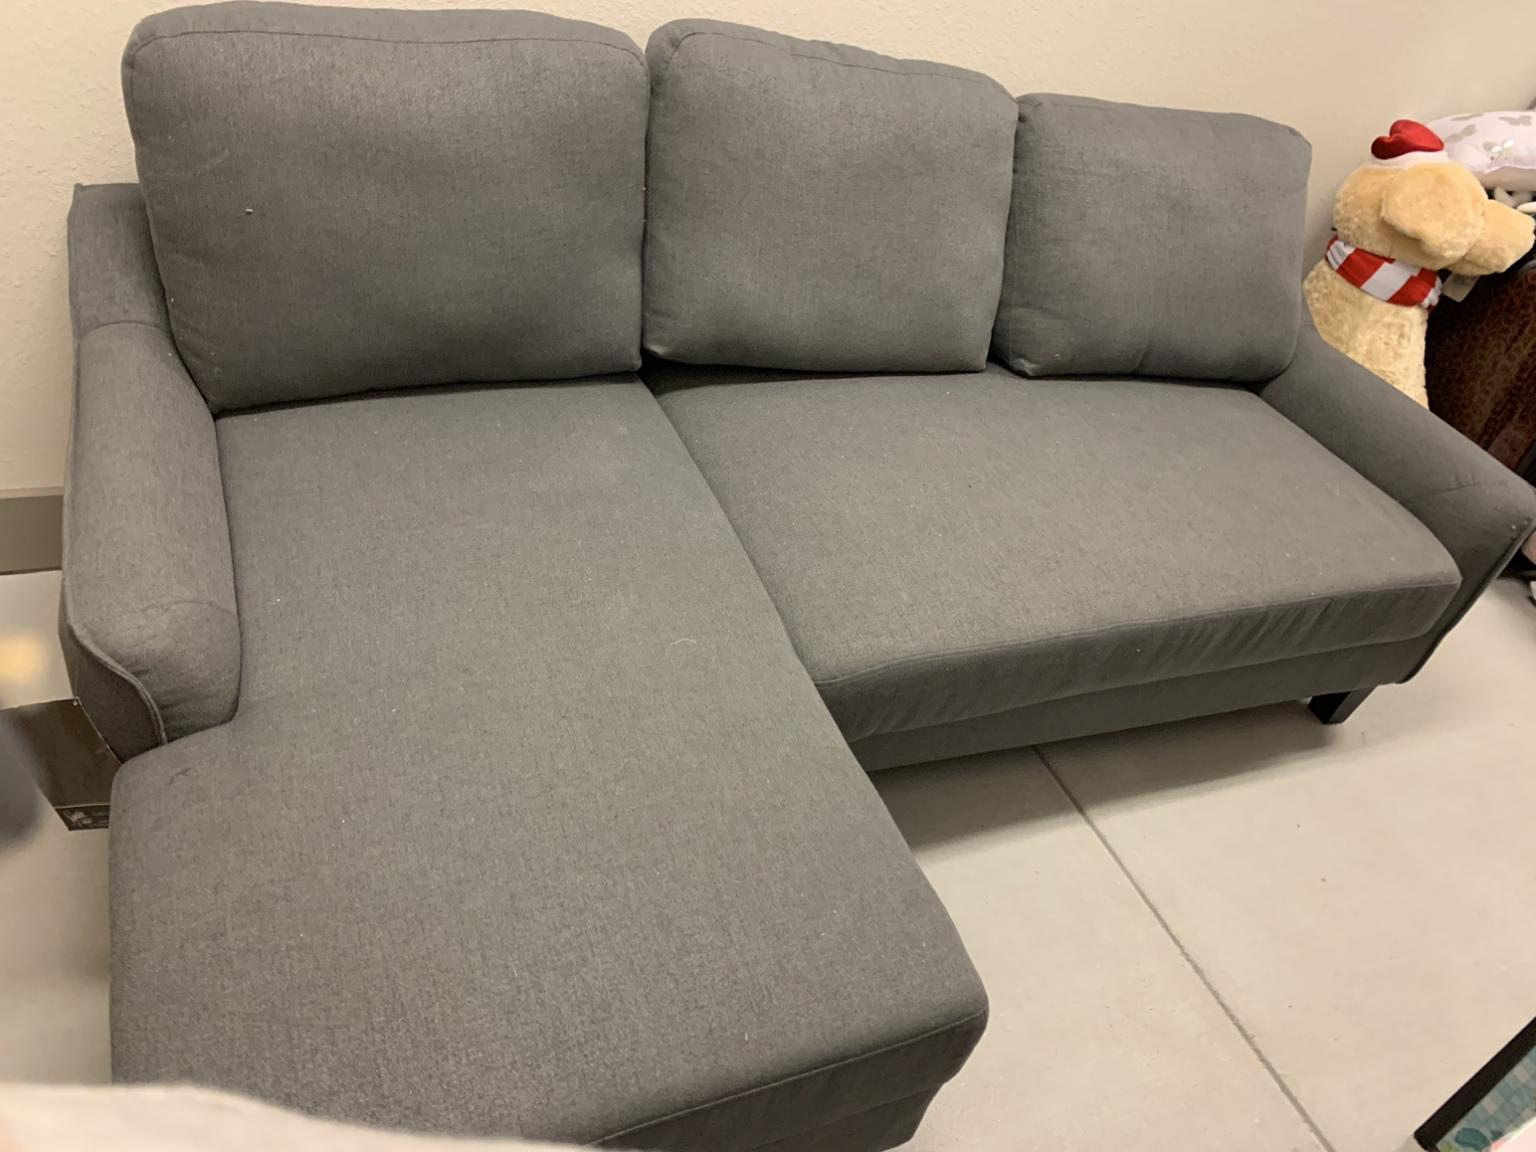 Semi Brand New Sofa Bed Ashley Furniture In 77084 Houston For Us 250 00 For Sale Shpock